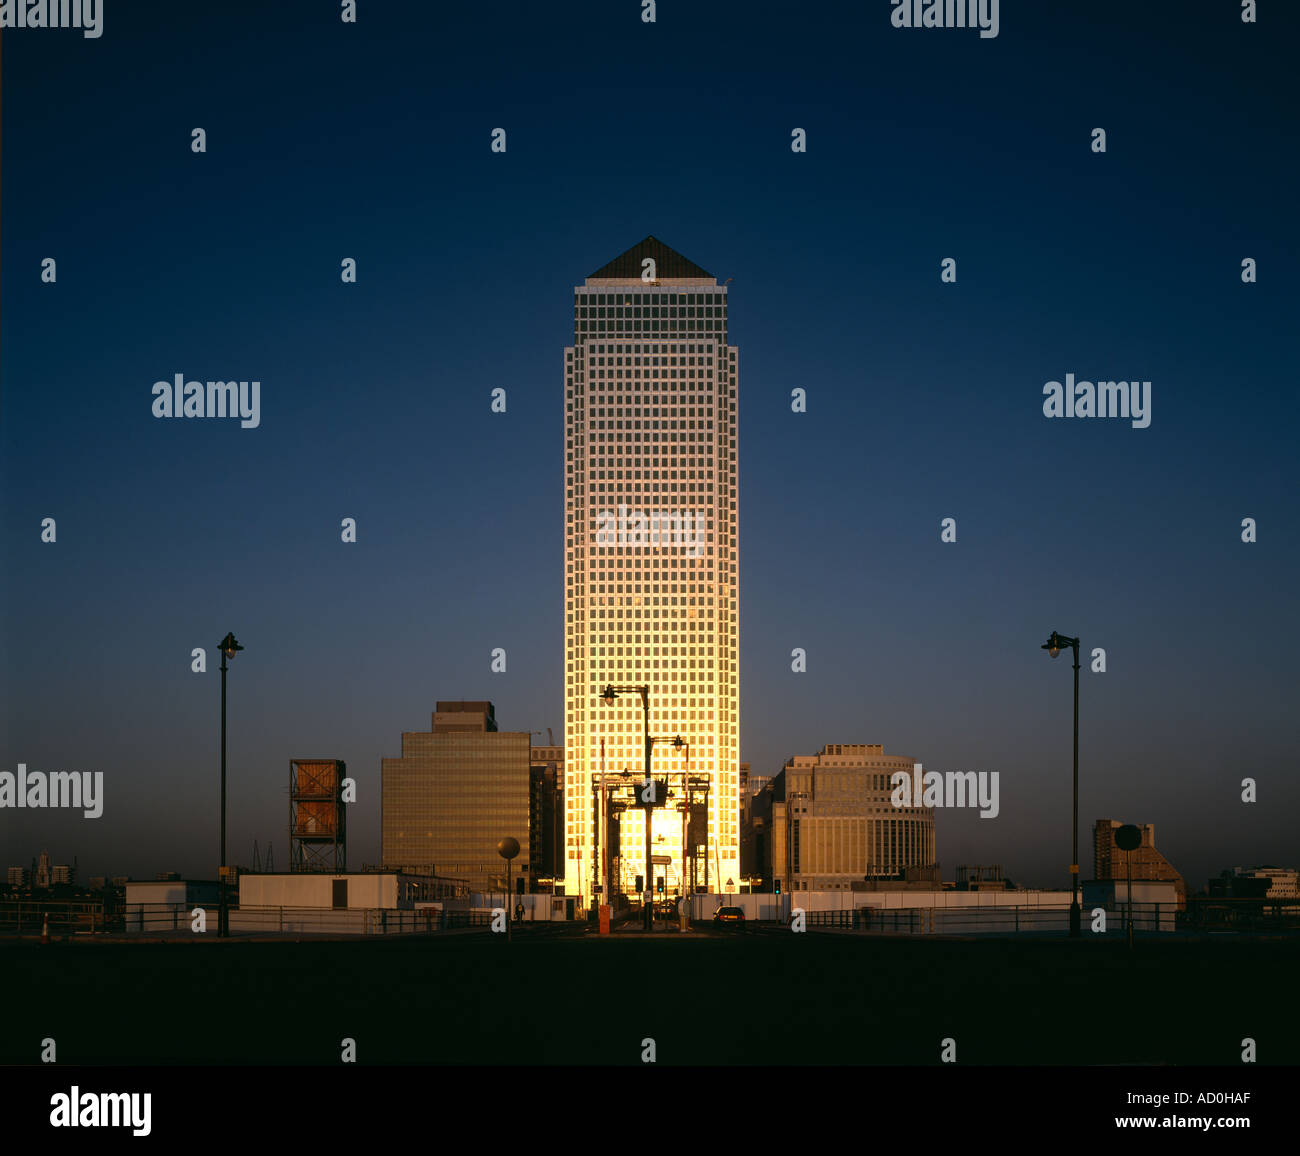 Canary Wharf, Docklands, London. Architect: Cesar Pelli - Stock Image